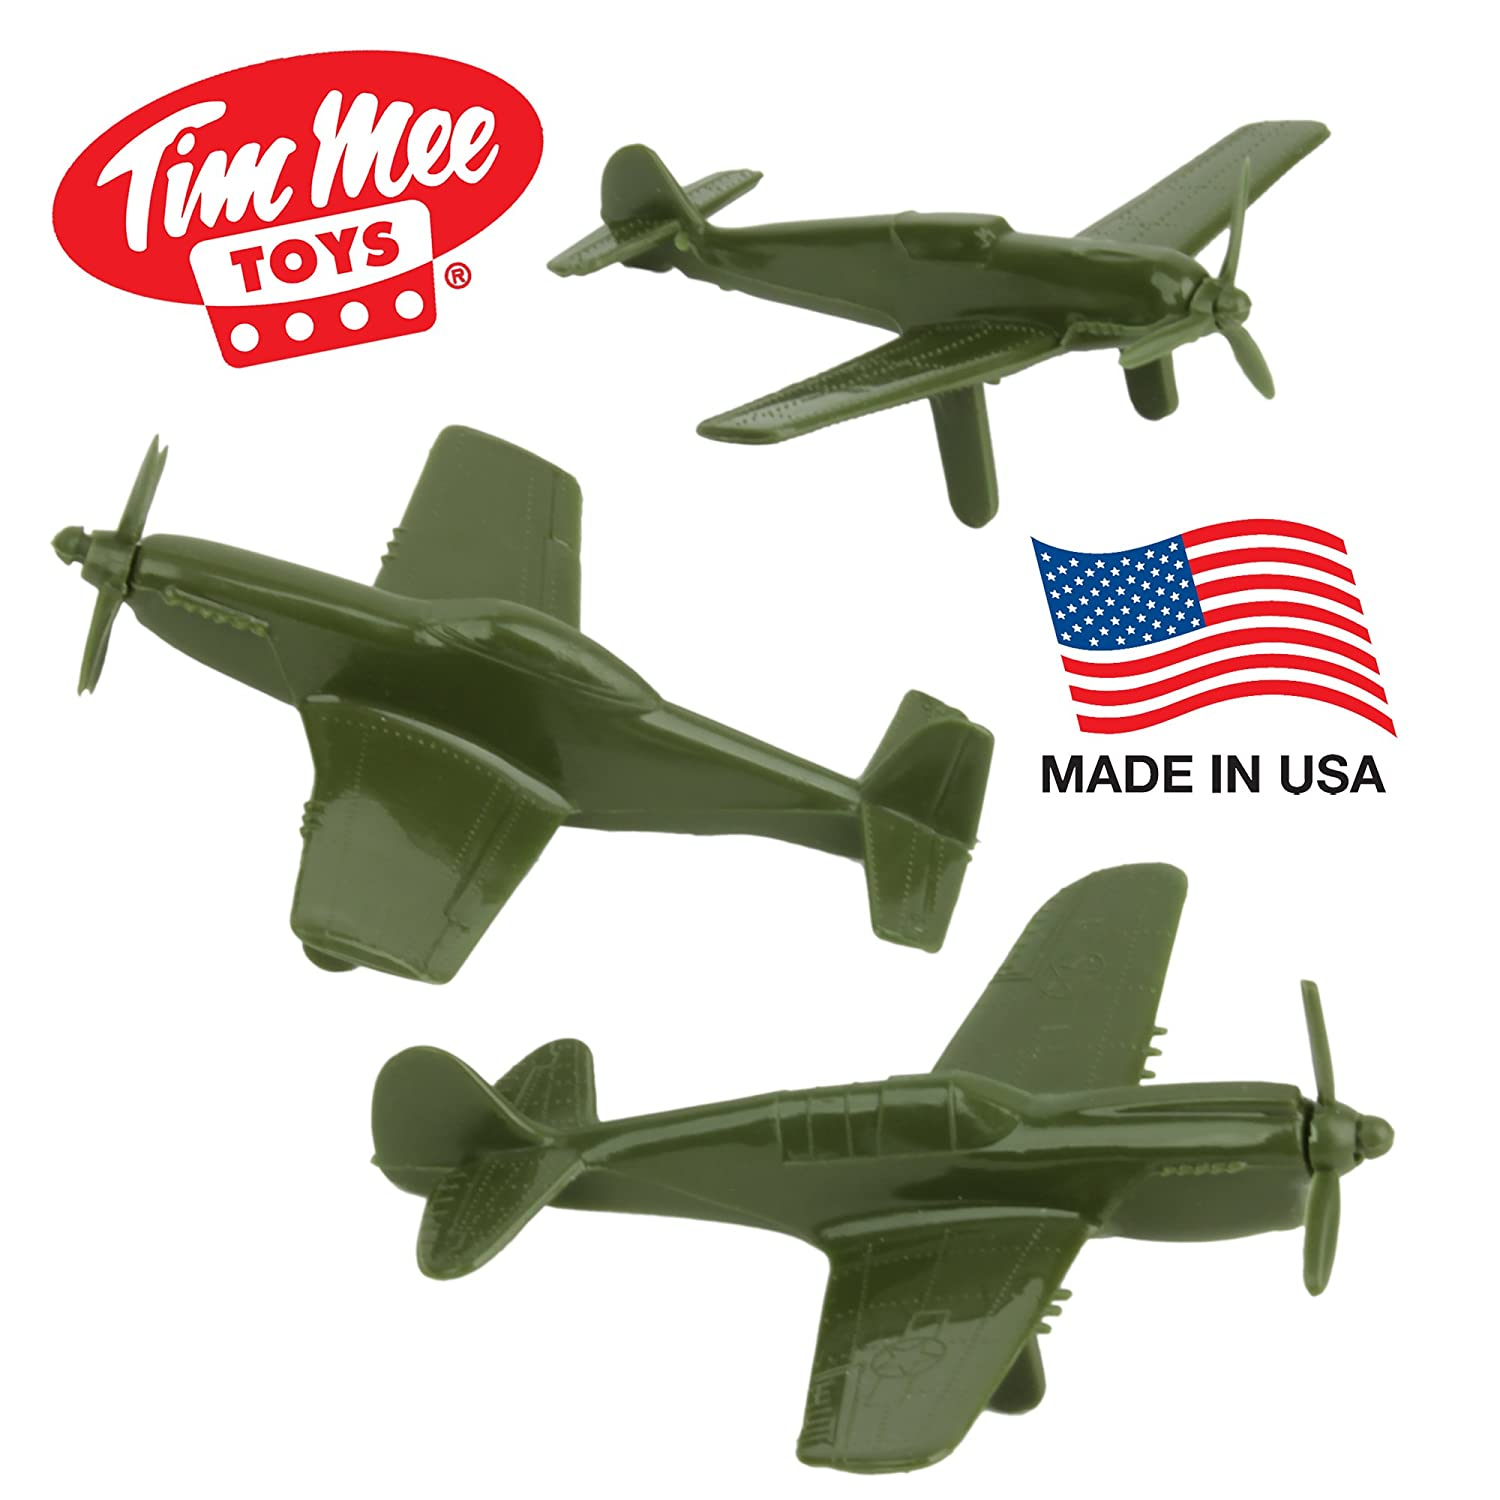 On Sale Tim Mee Ww2 Fighter Ace Planes 3 Green Plastic Army Men Spy Jet Escape 8638 Airplanes Made